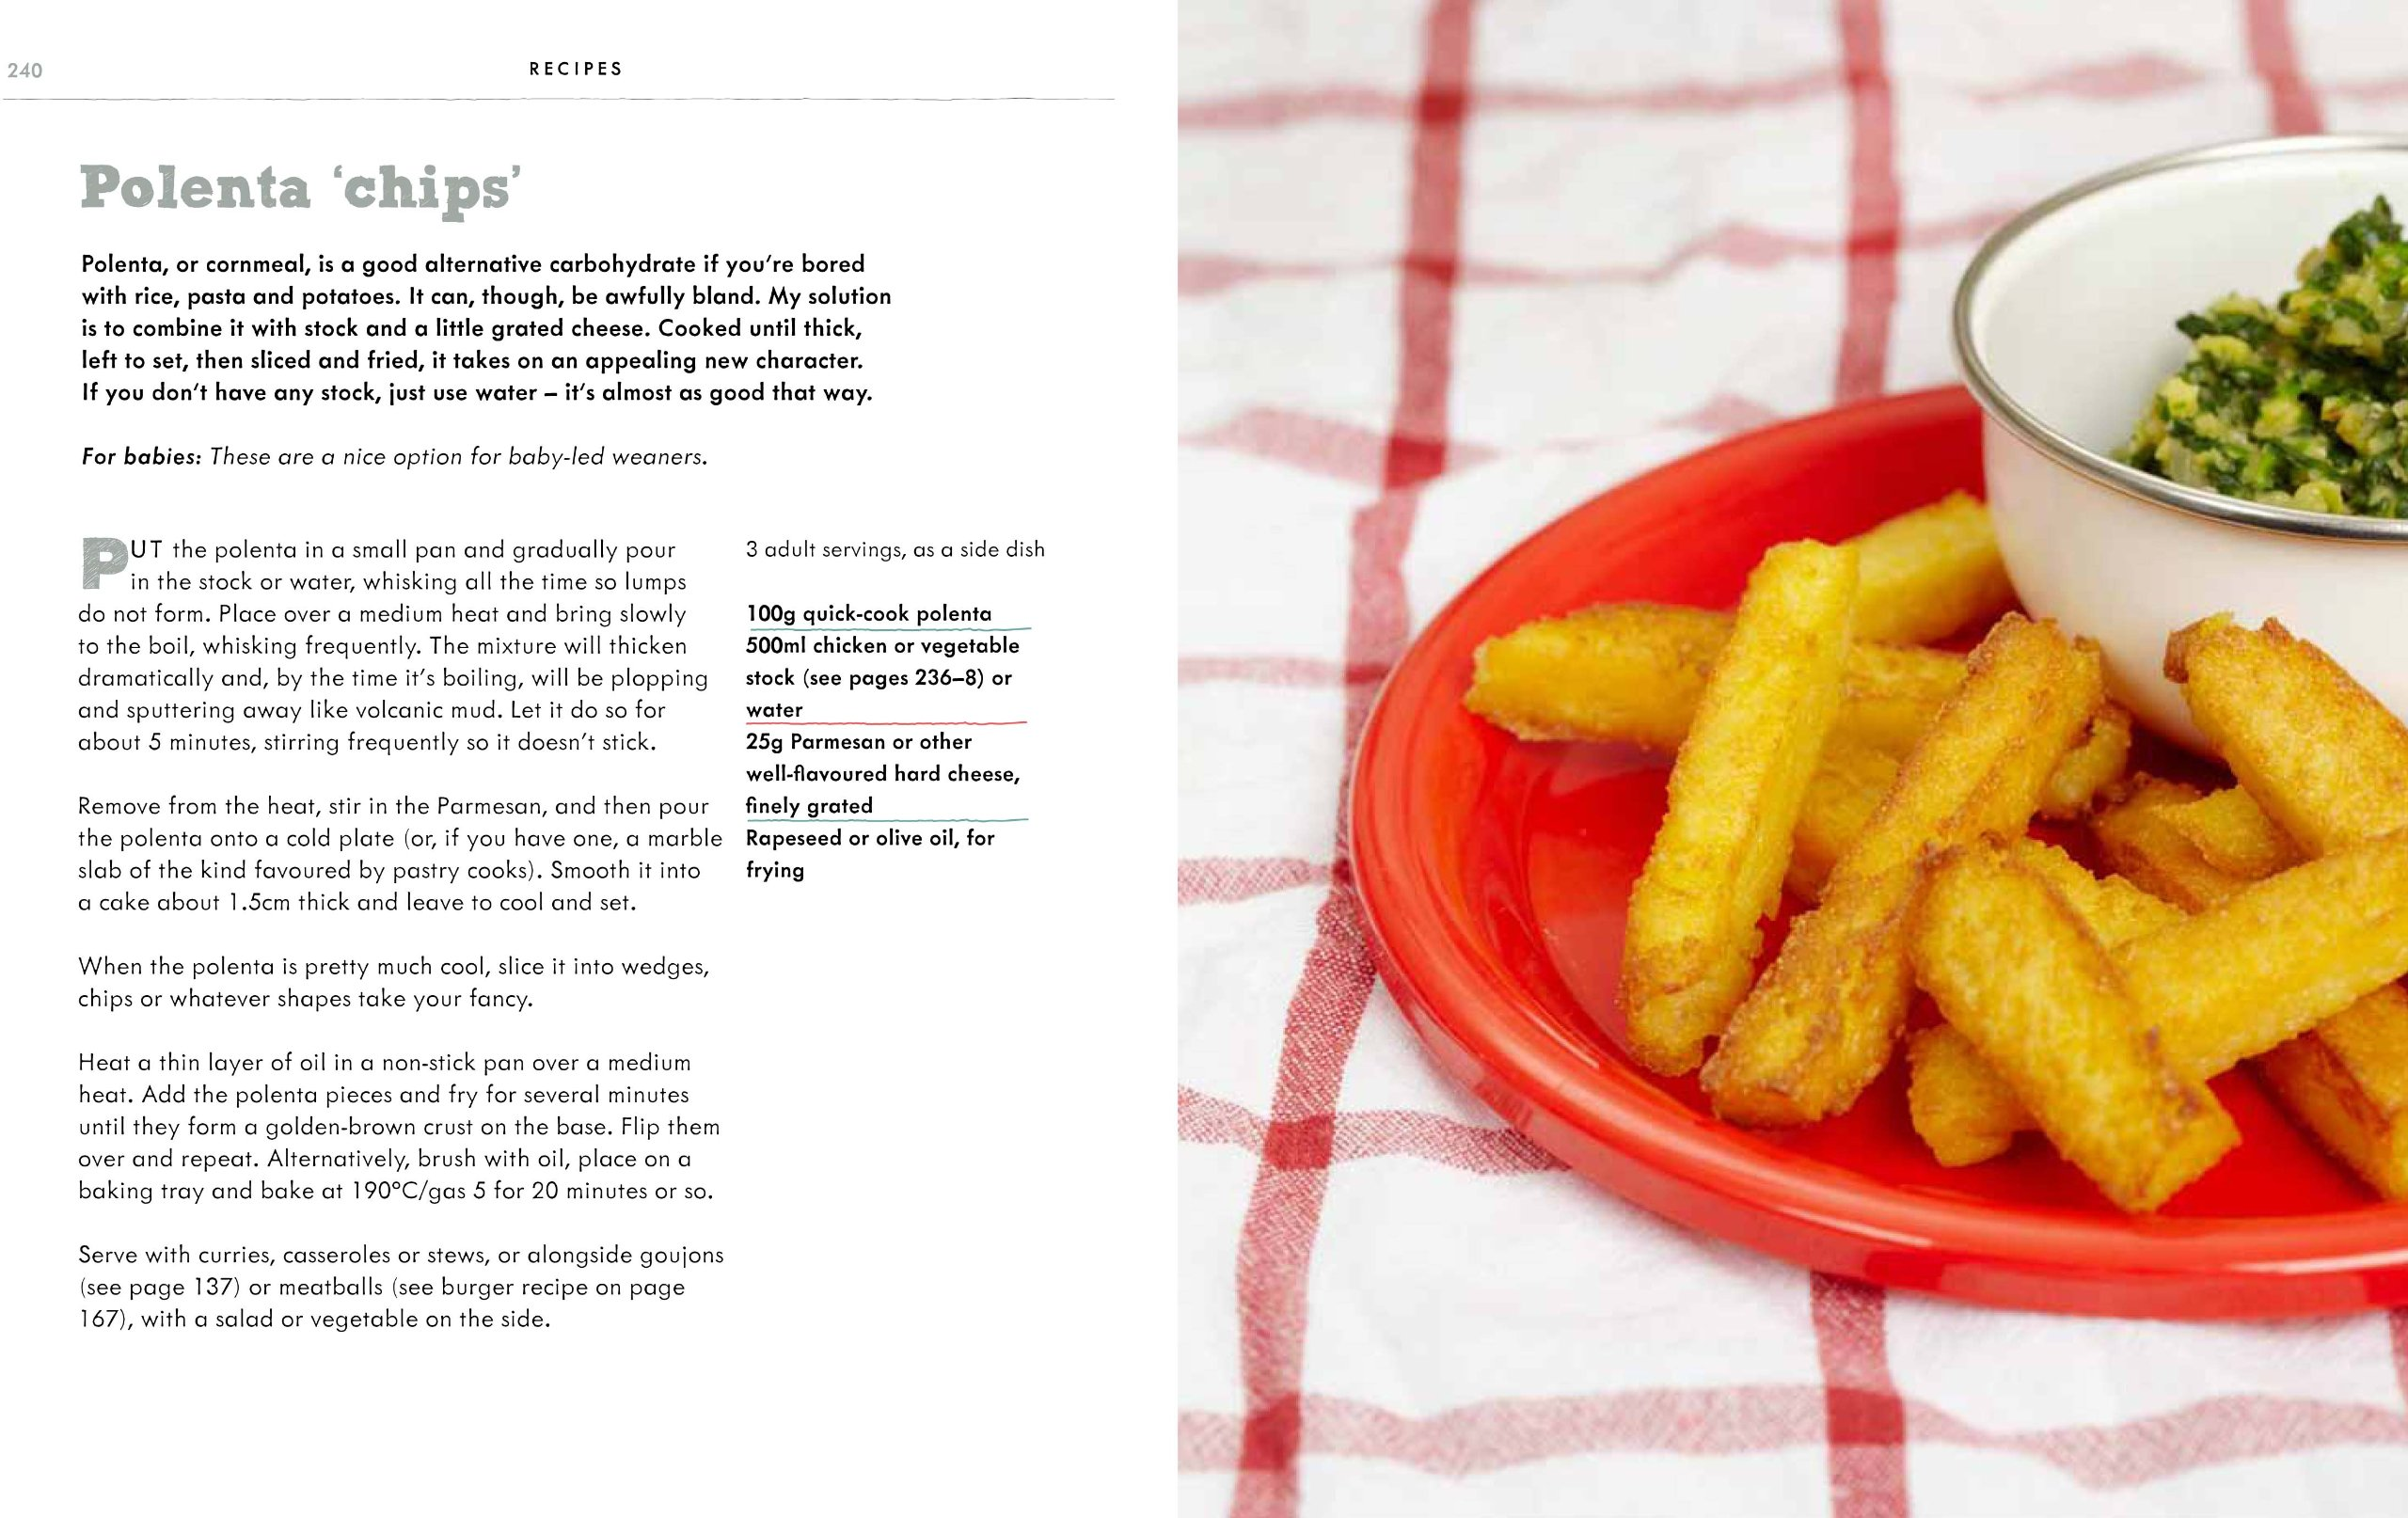 River cottage baby and toddler cookbook amazon river river cottage baby and toddler cookbook amazon river cottage baby toddler nikki duffy 8601404199974 books forumfinder Gallery